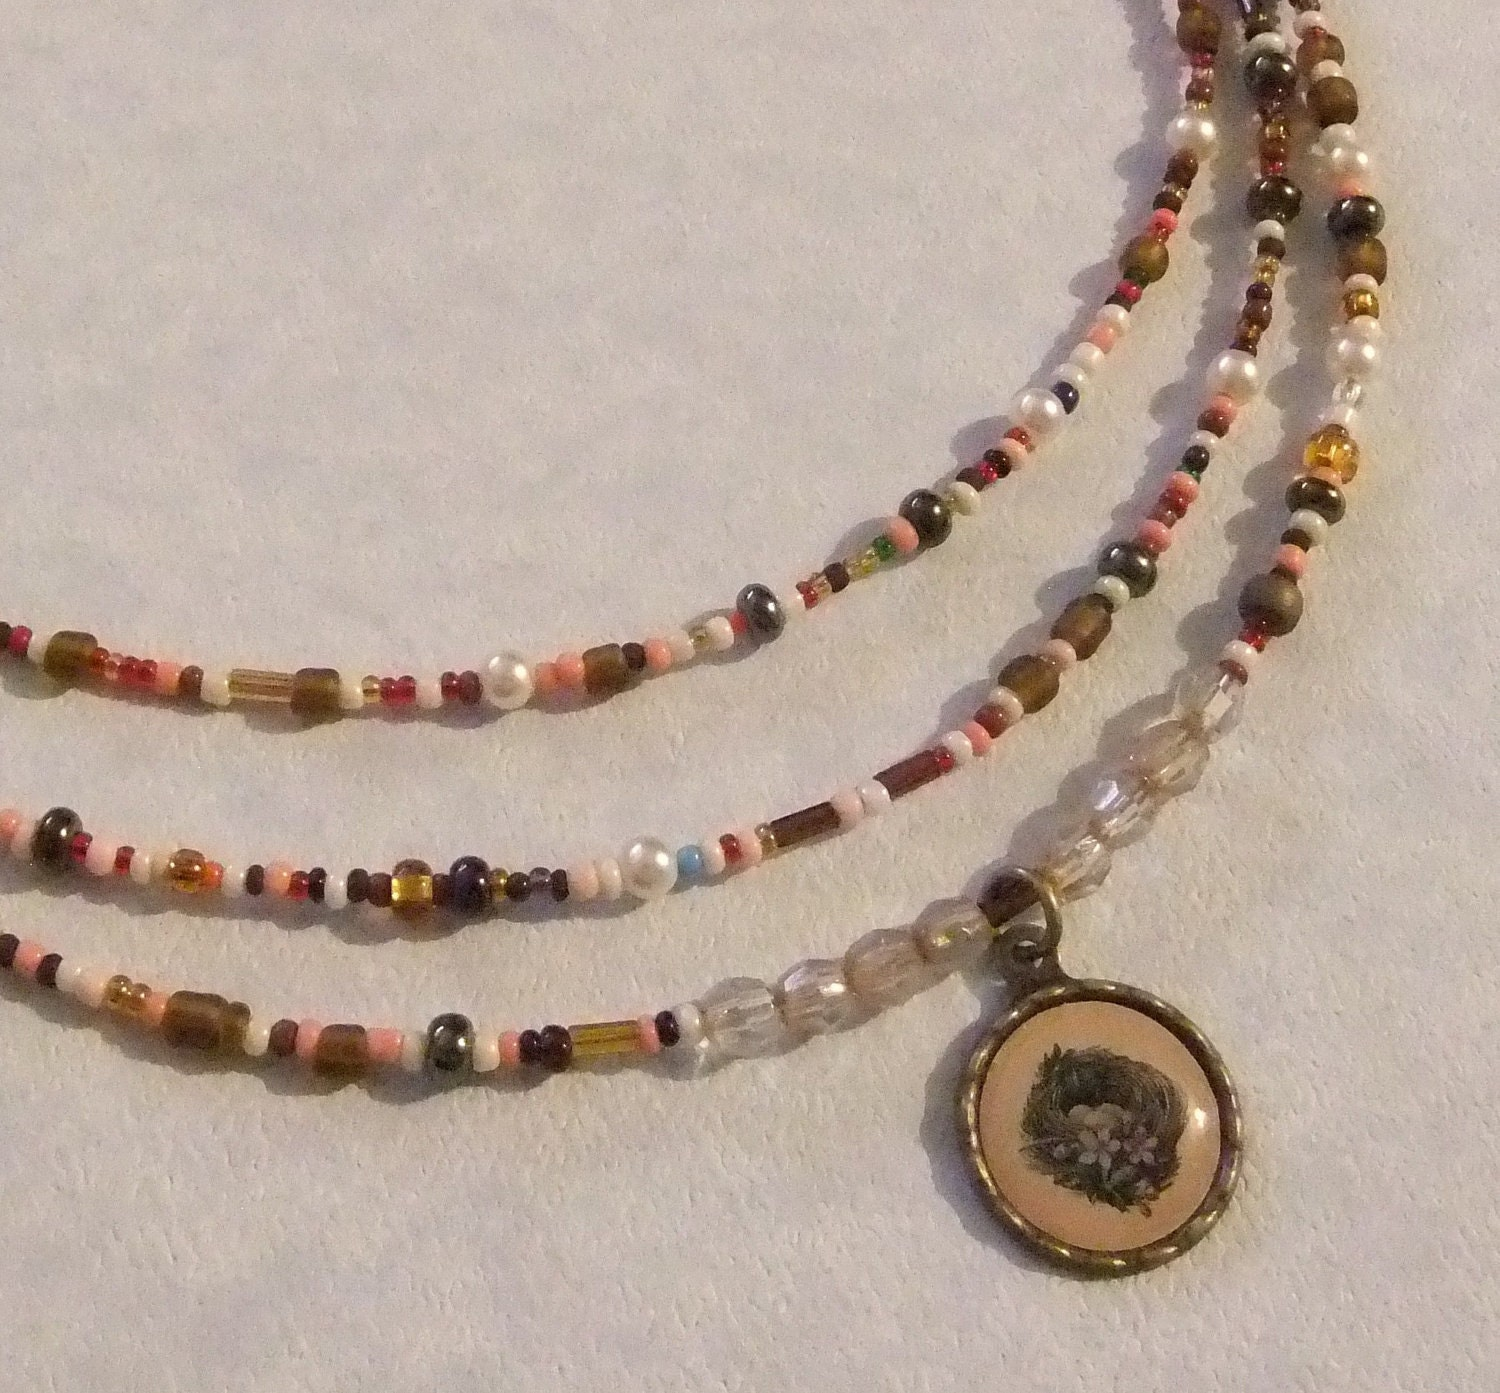 Seed Bead, Crystal, Pearl, Brass and Birdnest Charm Necklace - centerofbalance